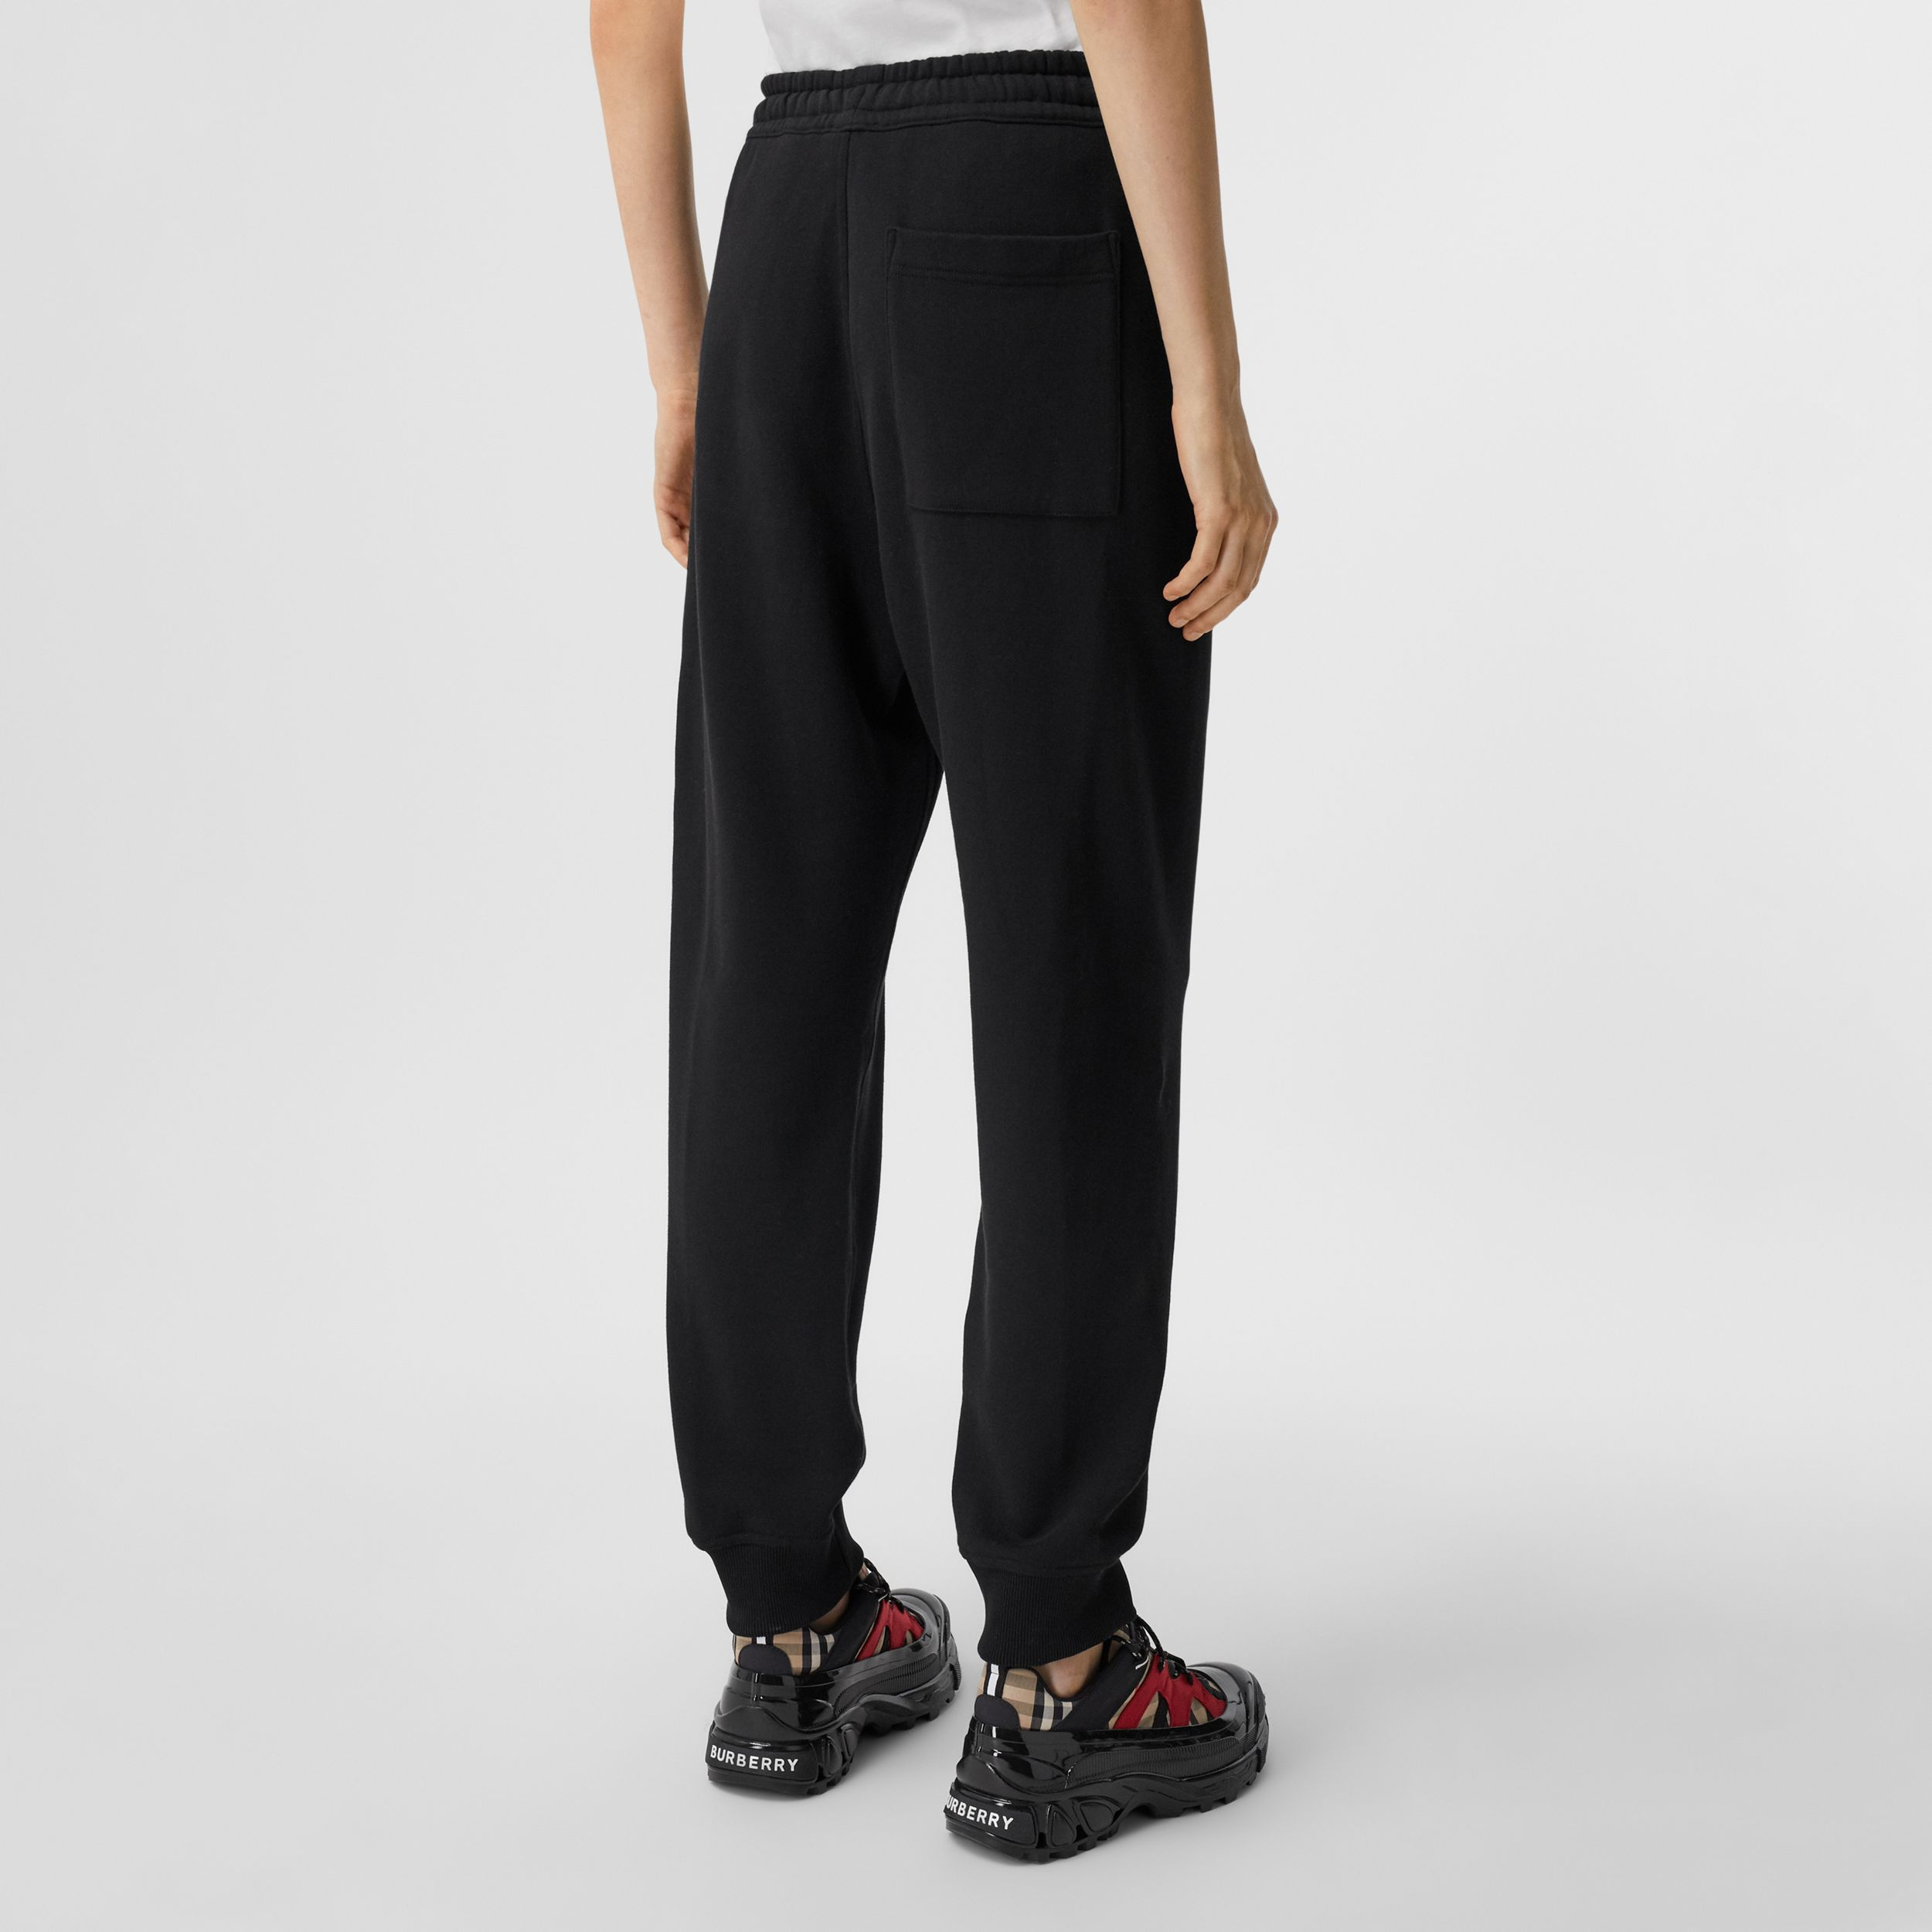 Logo Print Cotton Jogging Pants in Black - Women | Burberry - 3